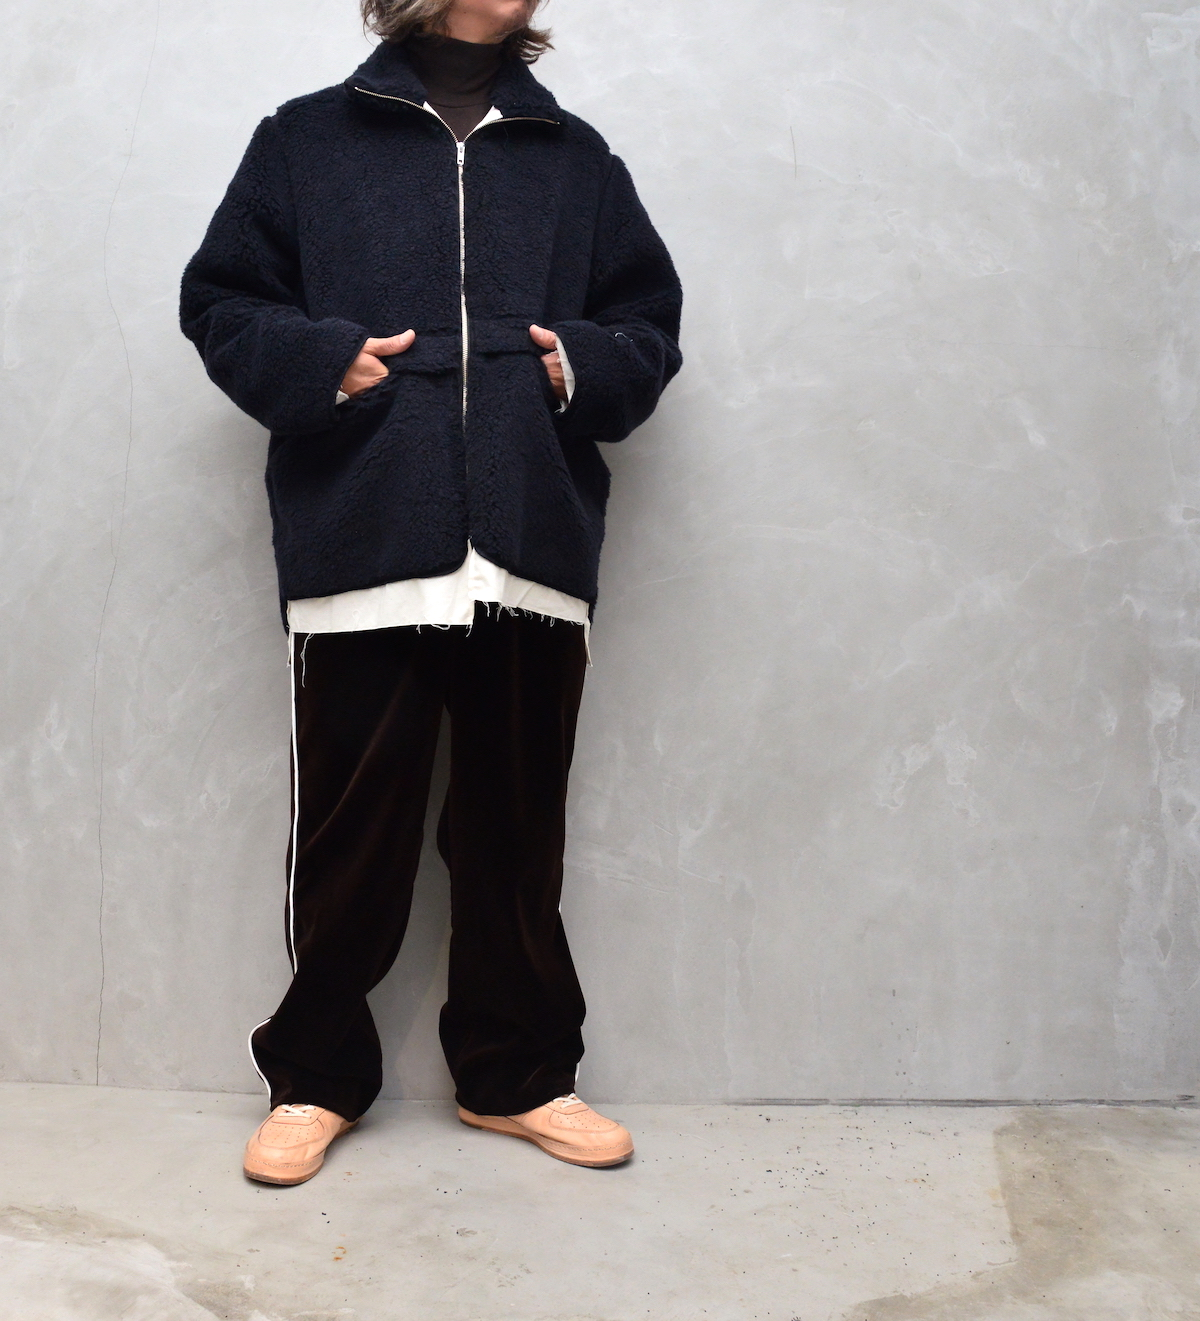 CAMIEL FORTGENS「 10.05.11 SPORT PANTS WITH PIPING VELVET 」